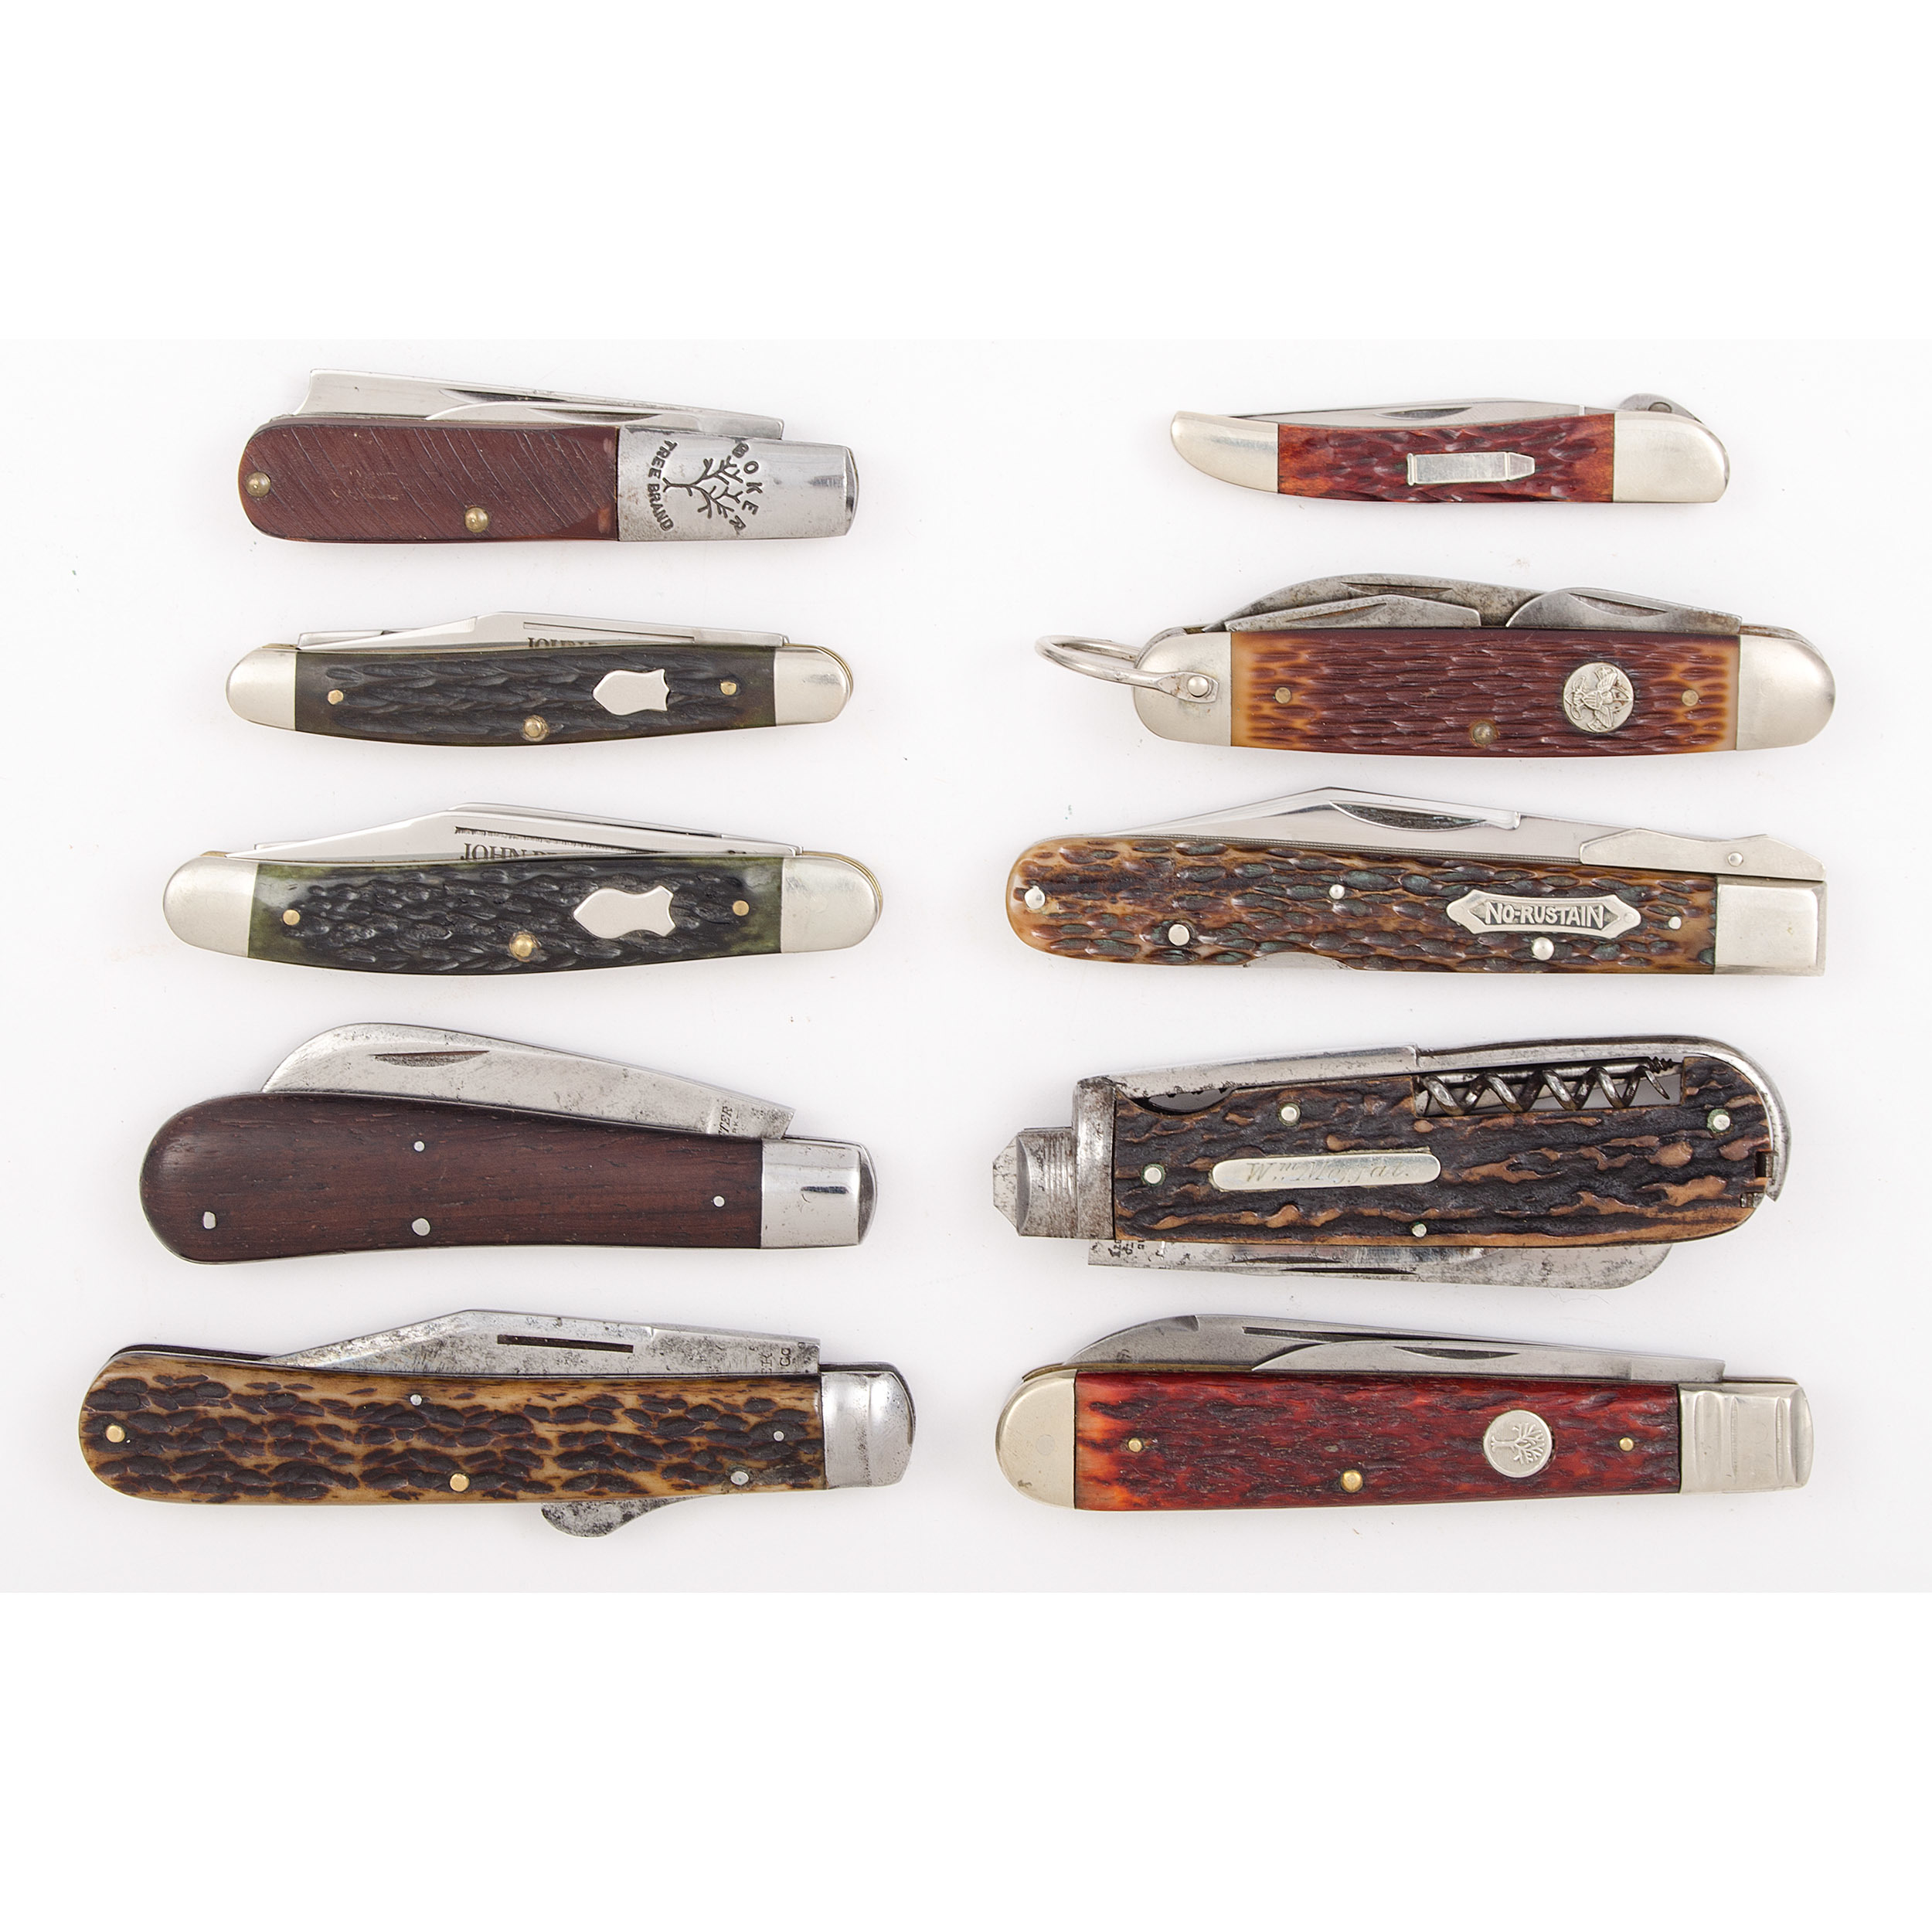 10 Vintage Pocket Knives from the Estate of Art Gerber, Tell